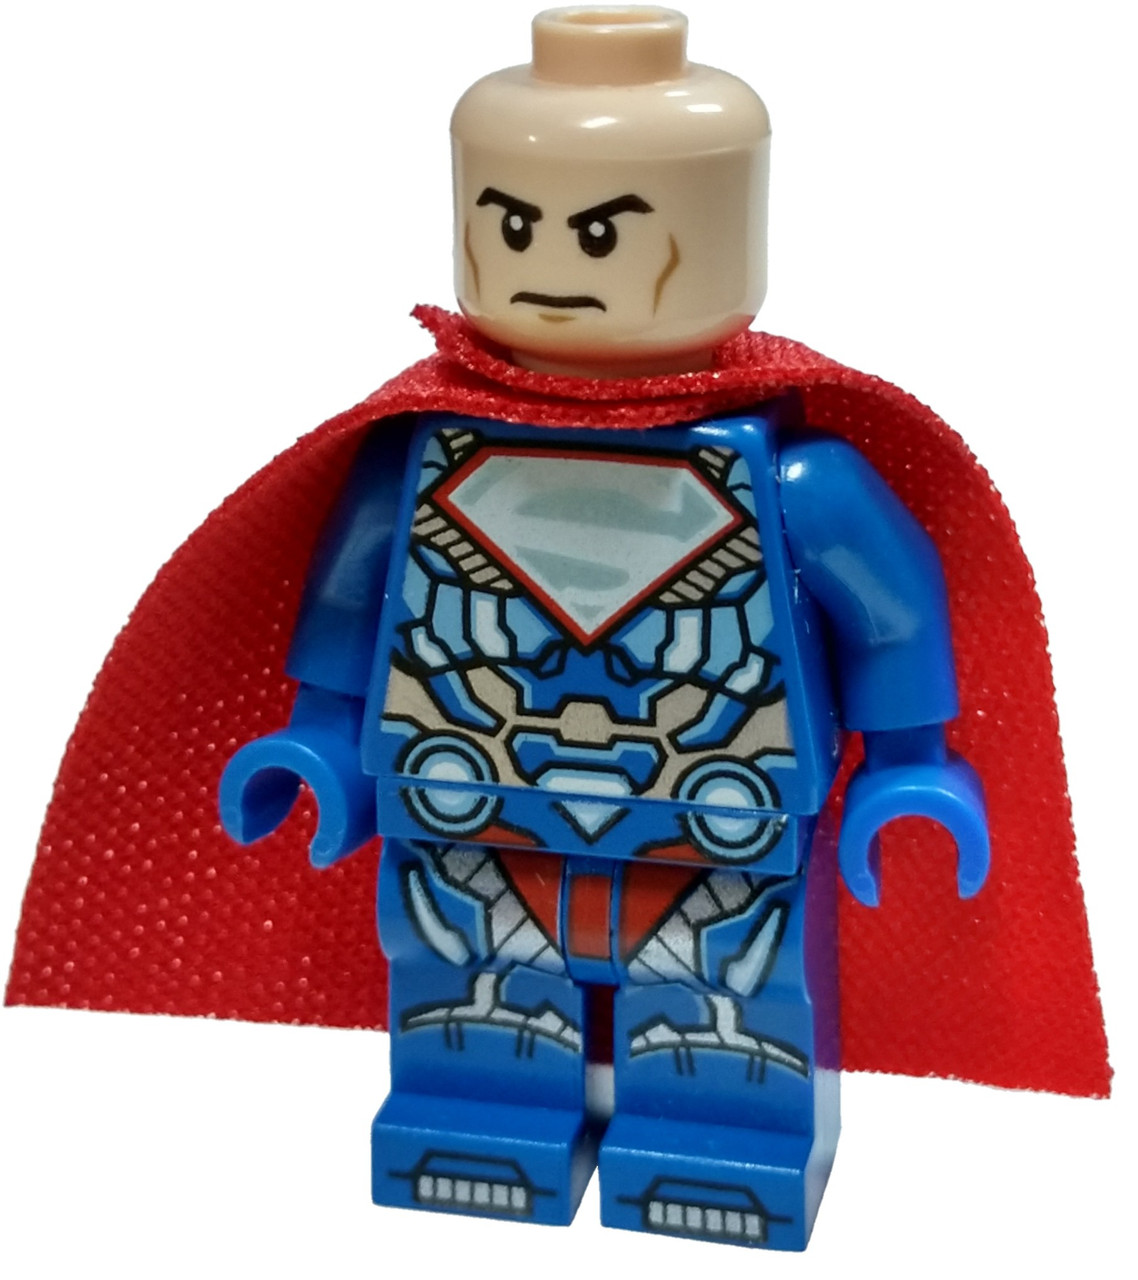 LEX LUTHOR DC COMICS MINIFIGURE FIGURE USA SELLER NEW IN PACKAGE